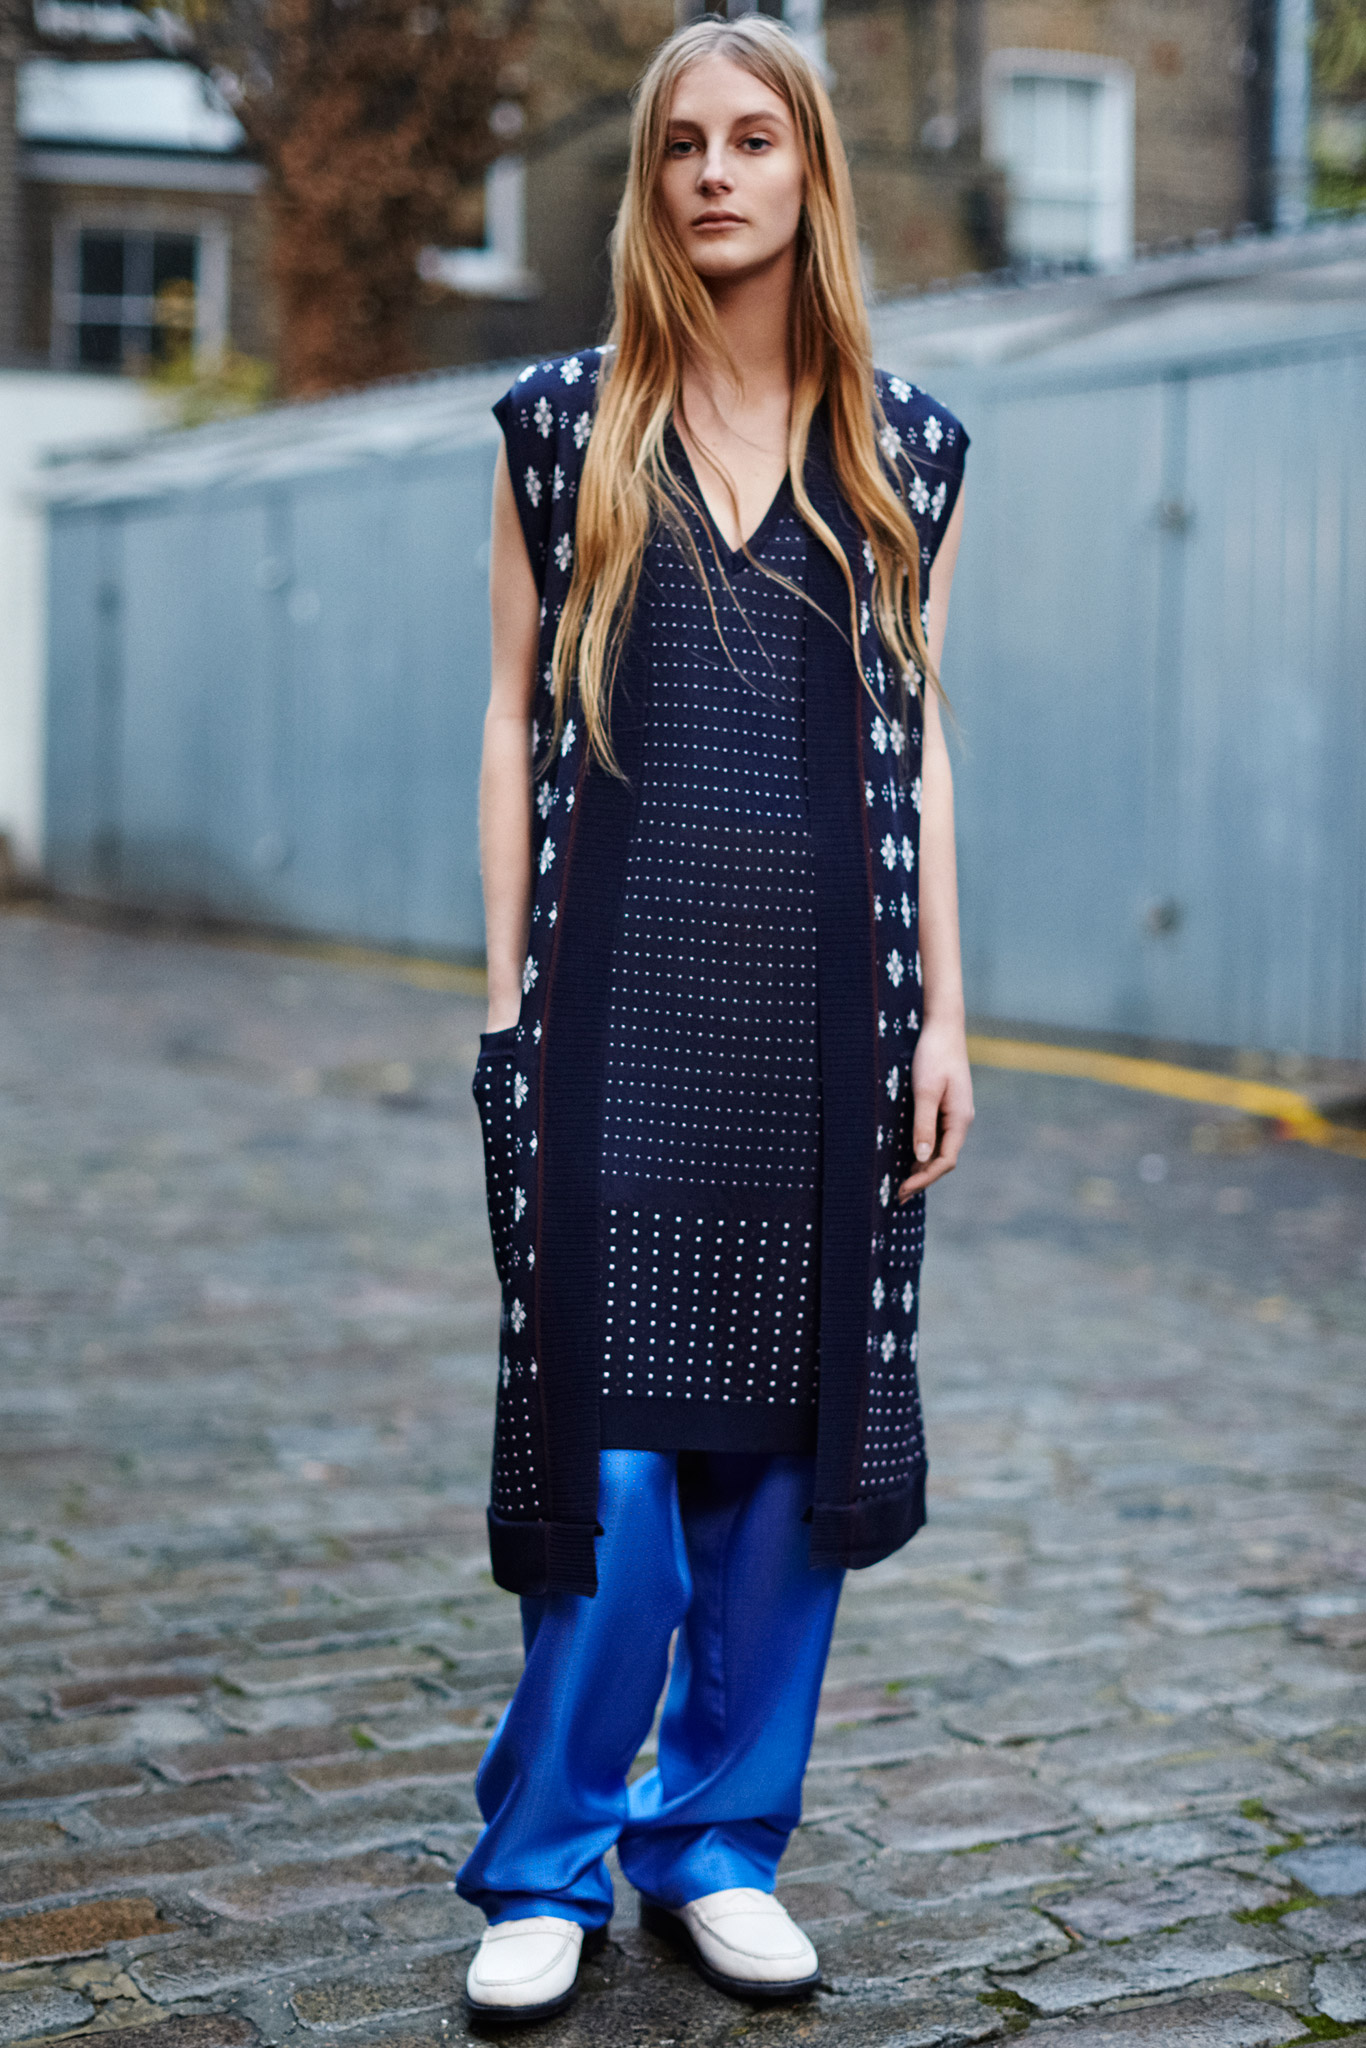 Dresses Over Pants | Stylekick | Blog